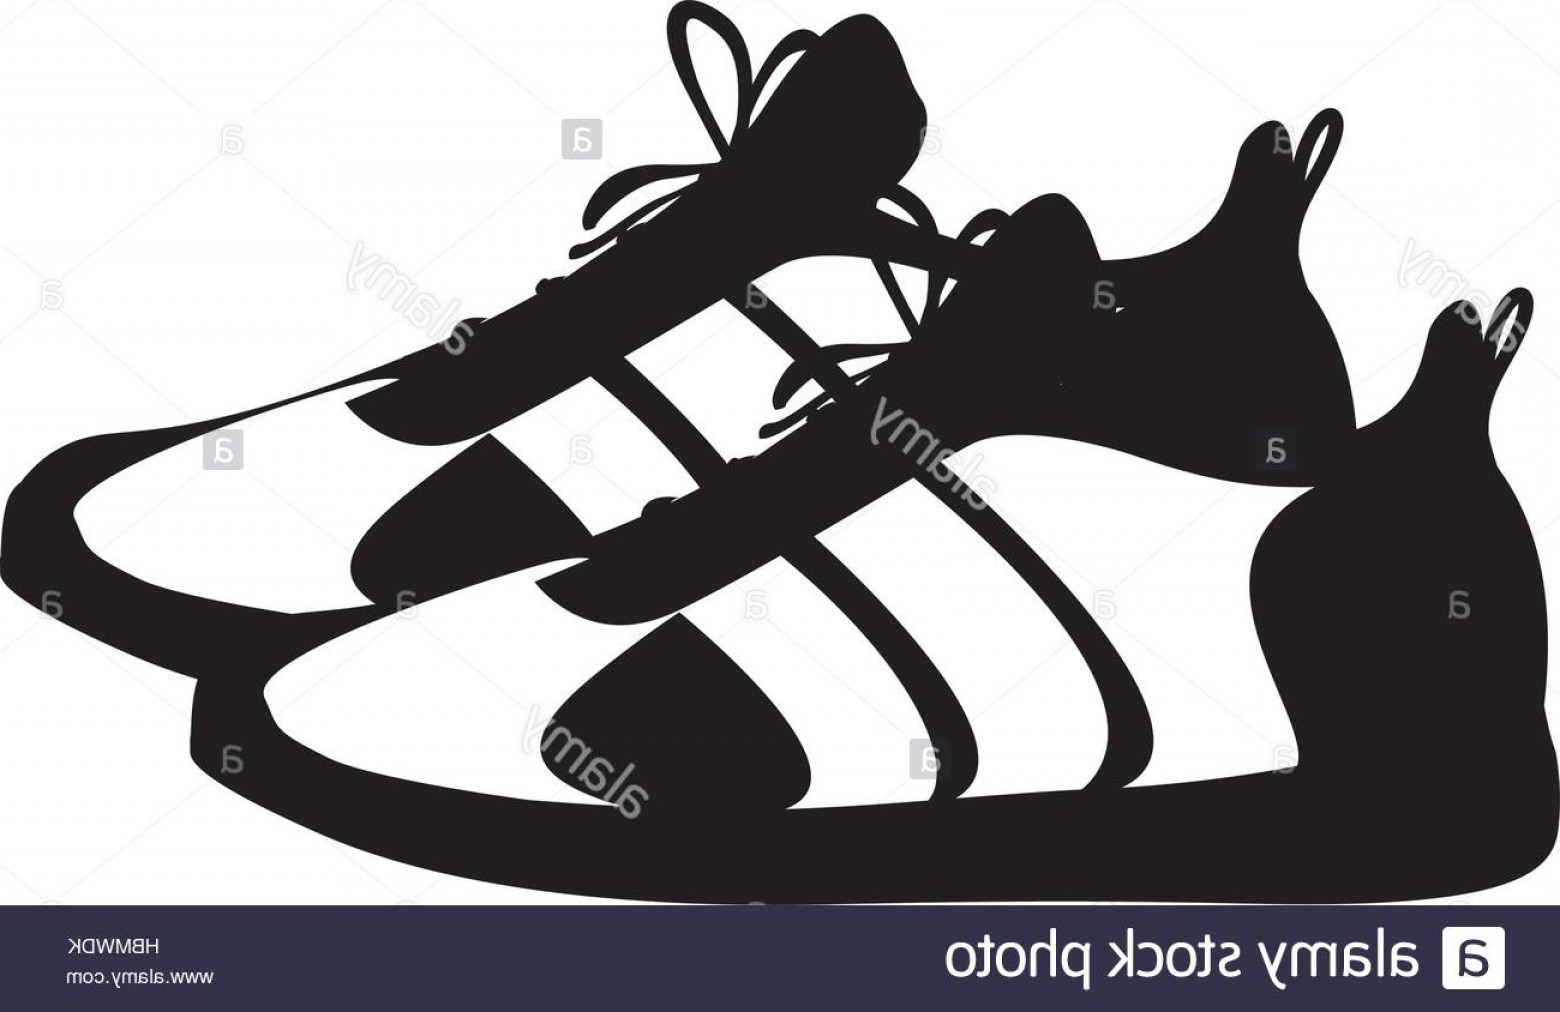 Sneaker Silhouette Vector: Stock Photo Silhouette Pair Black Fitness Sneakers Design Icon Vector Illustration